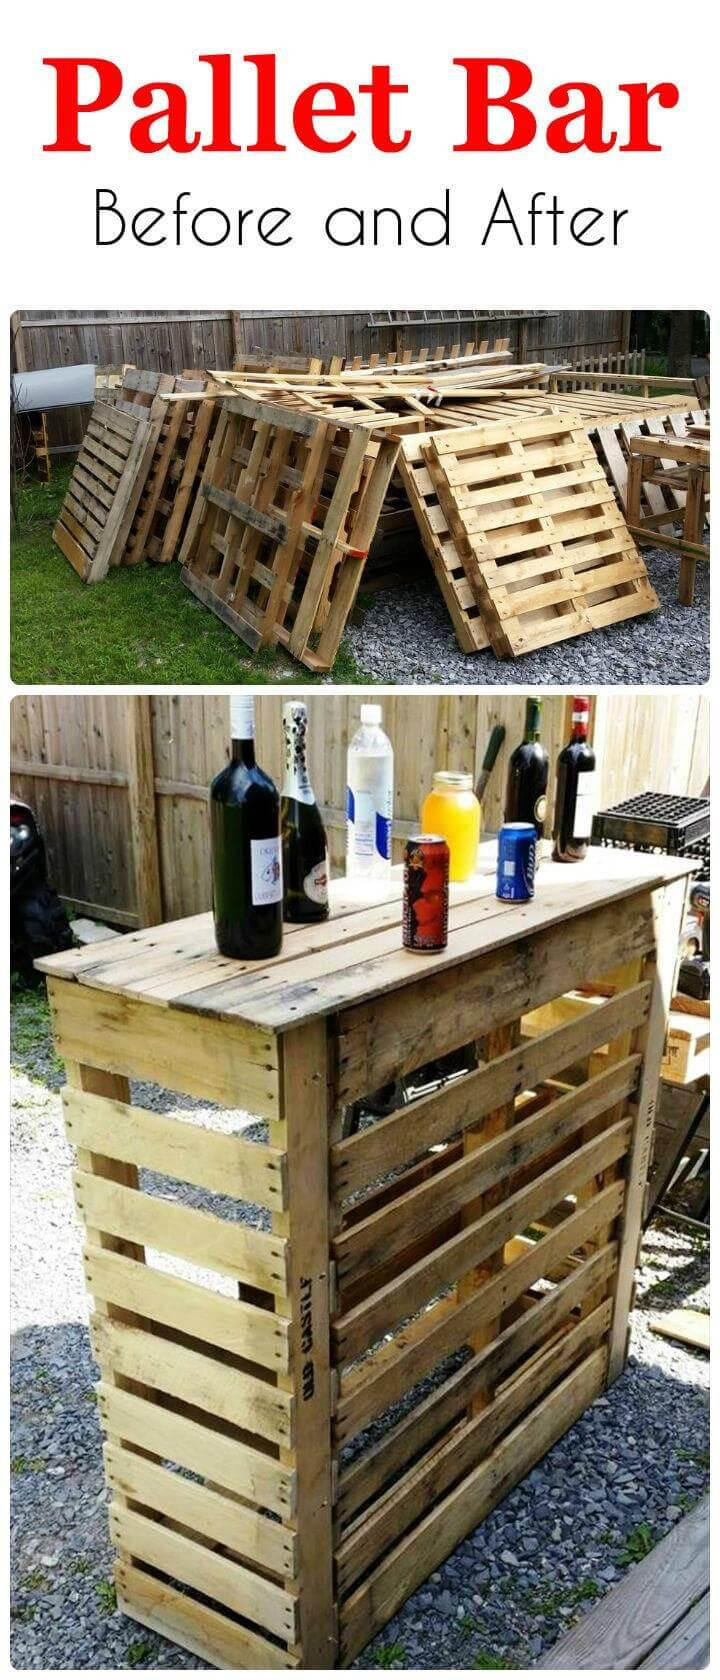 Before And After Pallet Bar Easy Pallet Ideas